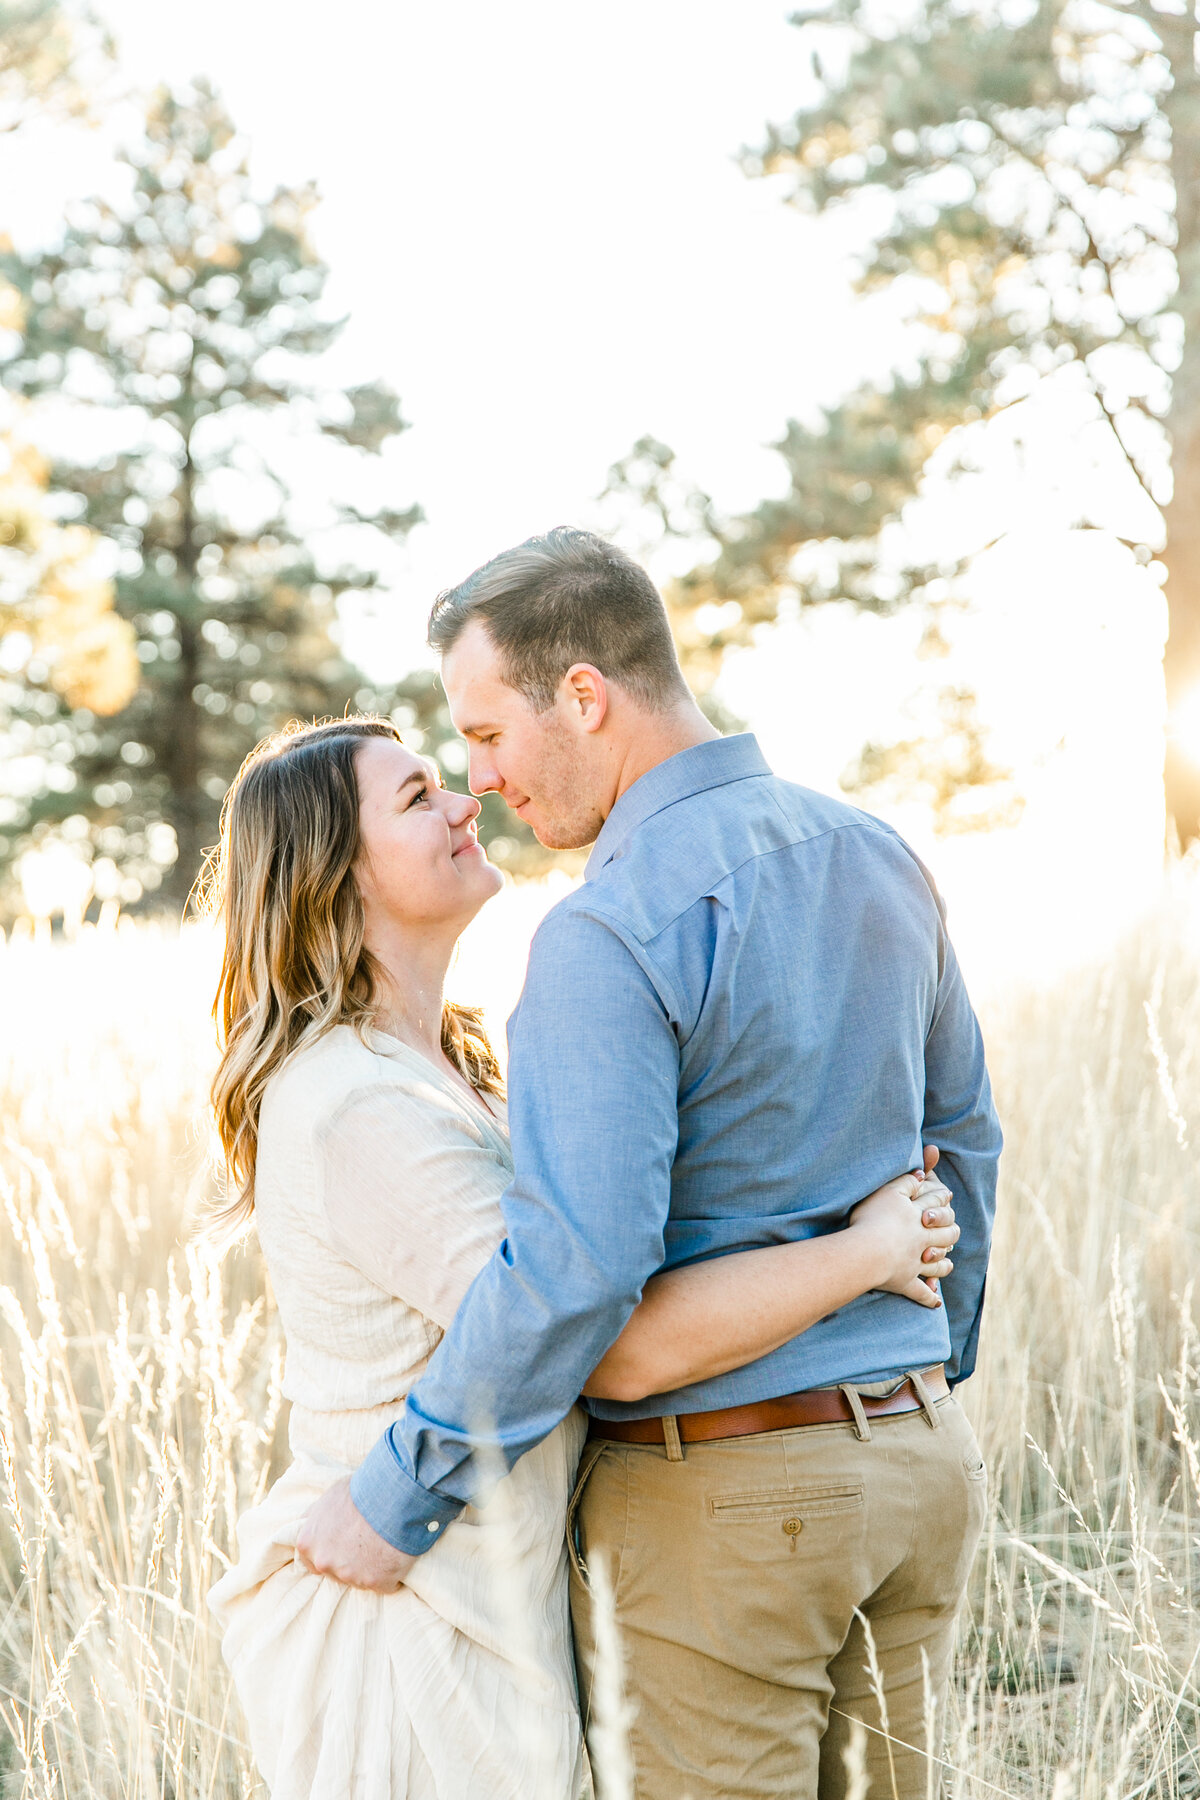 Karlie Colleen Photography - Flagstaff Arizona Engagement Photographer - Britt & Josh -206